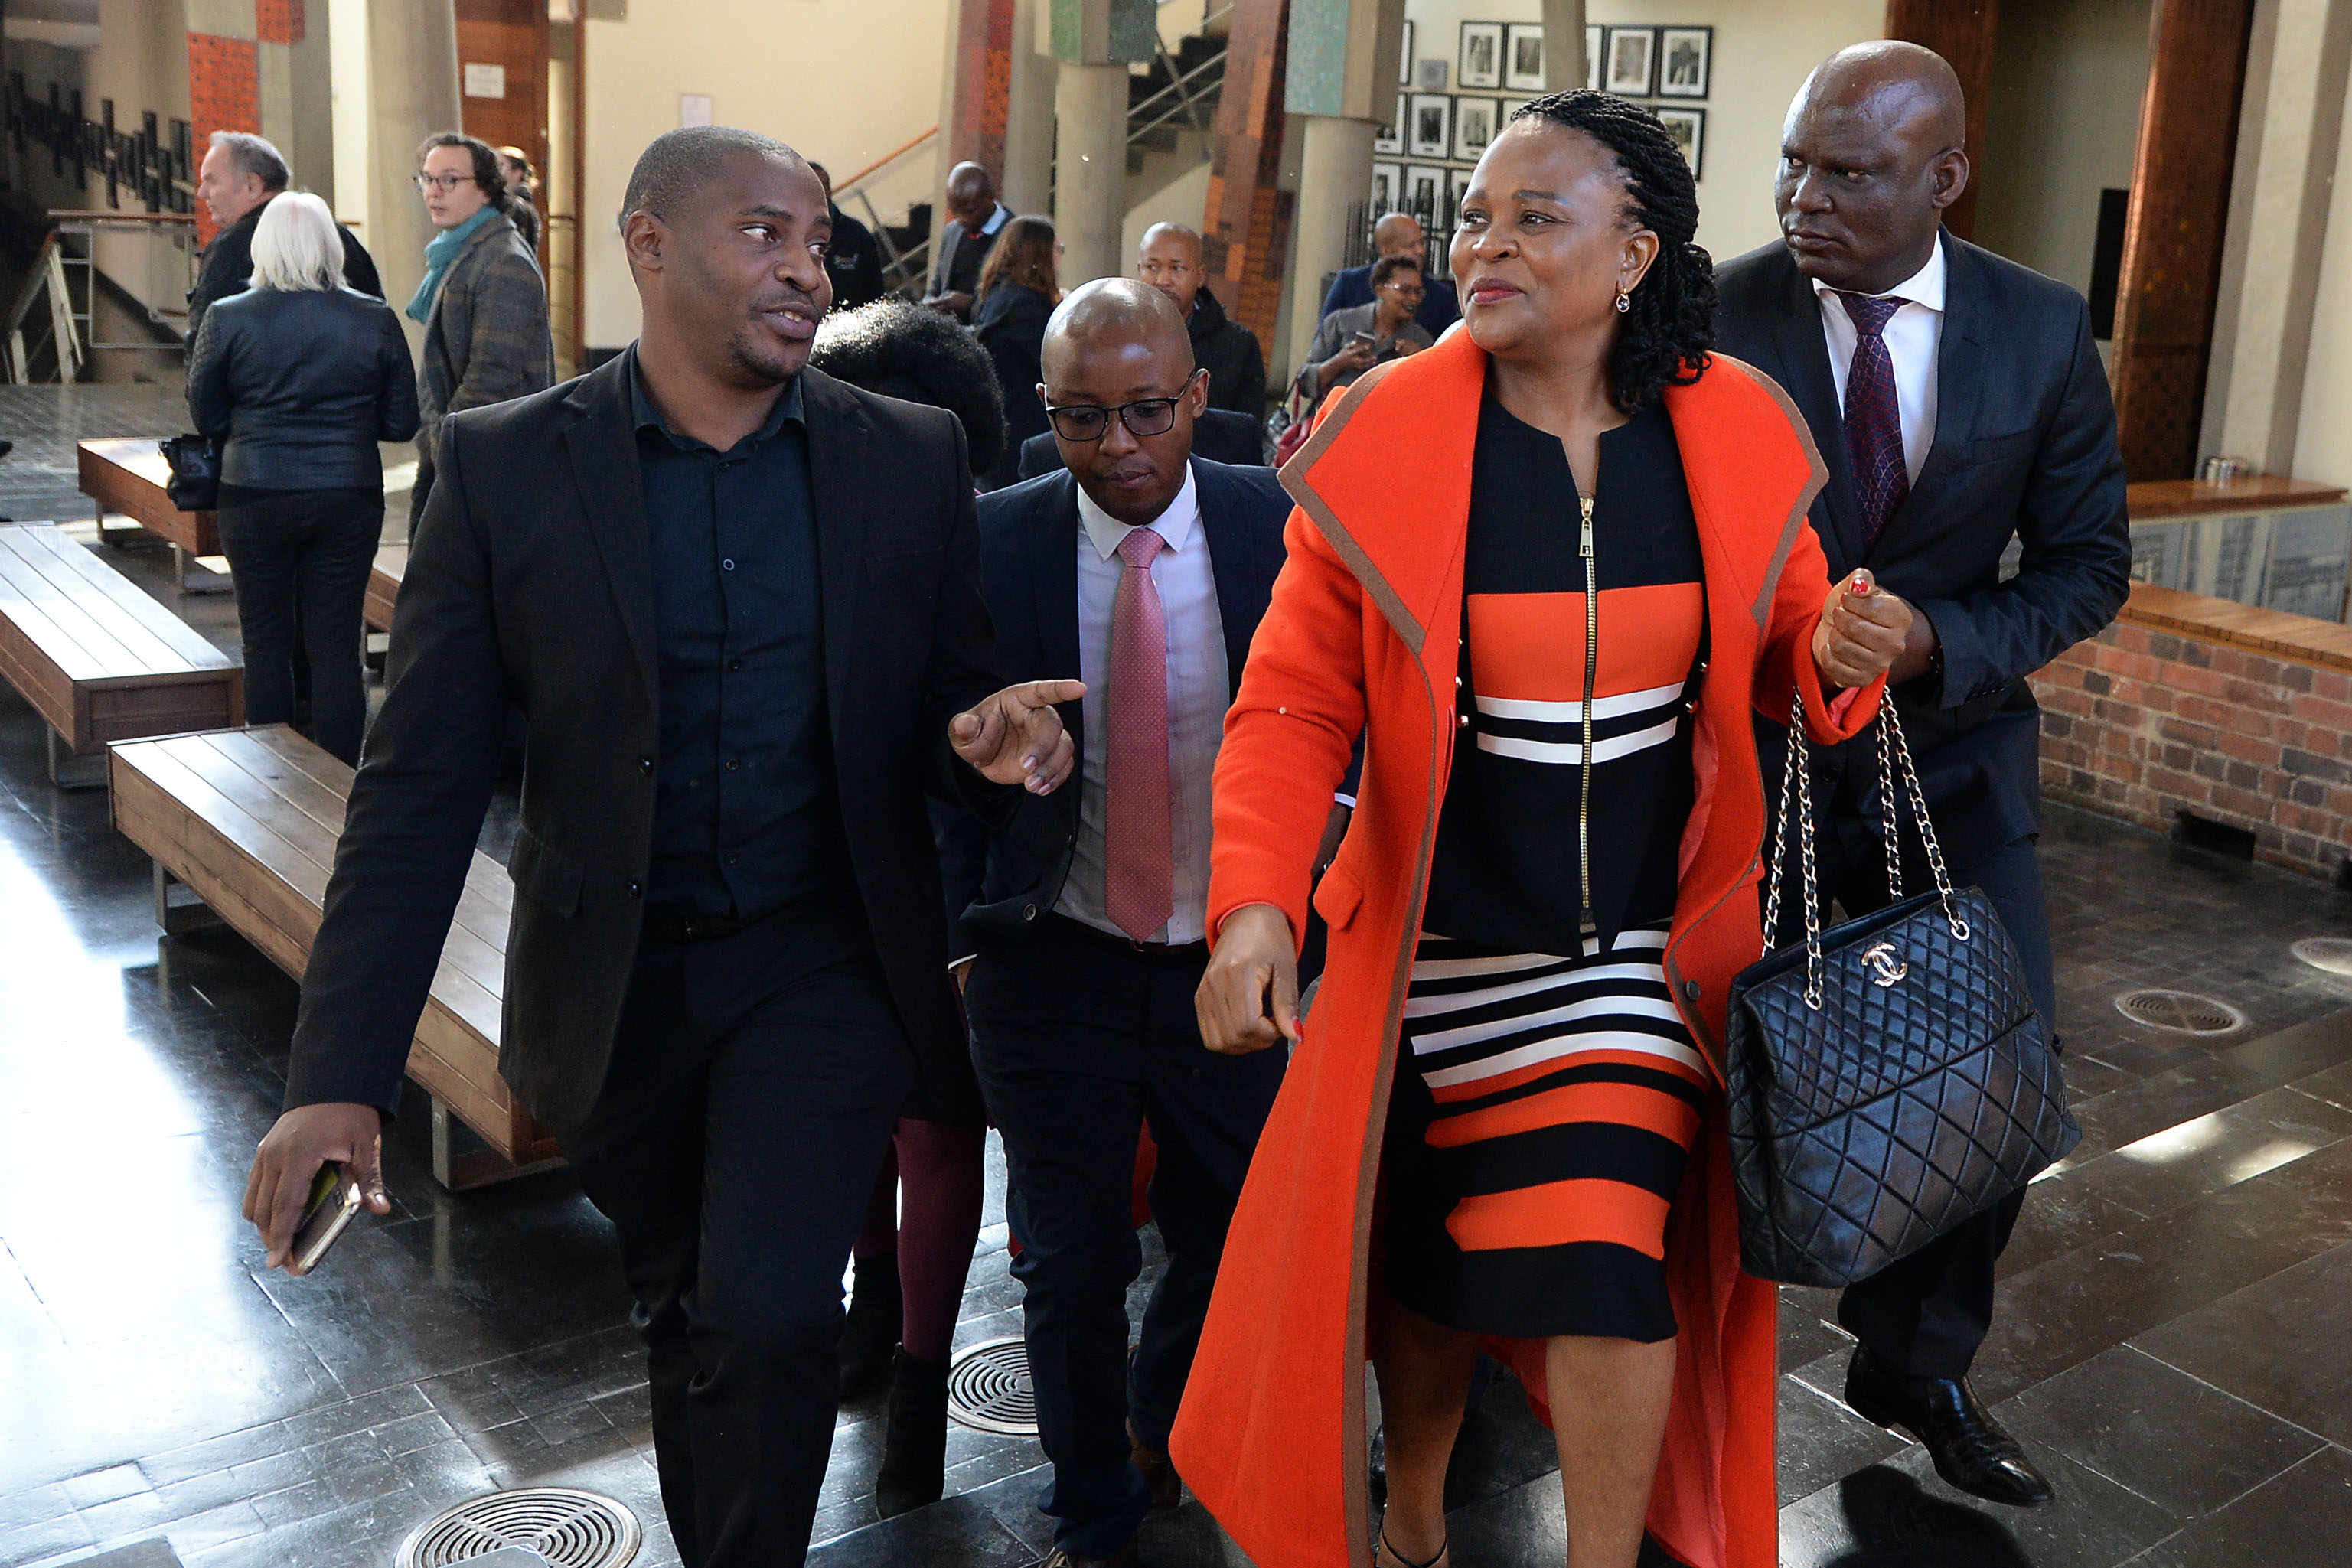 22 July 2019: Public Protector Busisiwe Mkhwebane (centre) at the Constitutional Court. (Photograph by Gallo Images/Netwerk24/Felix Dlangamandla)